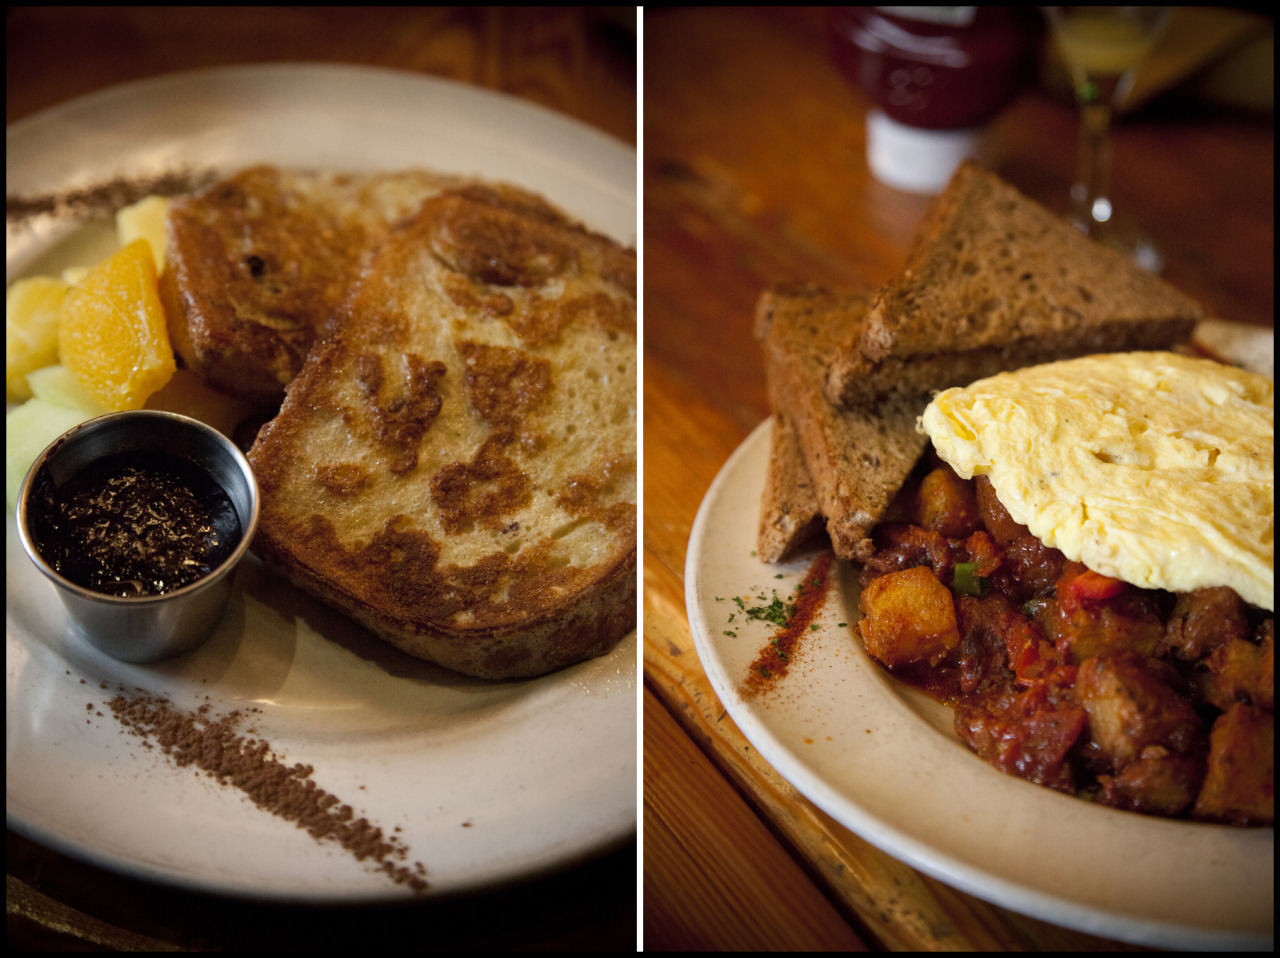 chorizoyourowneggventure :      Ouisi Bistro  January 27, 2013 French Toast with Berry Coulis; Hash It Out     Check out a side blog I have…  Chorizo Your Own Eggventure . Big photos from brunch in Vancouver. Warning: It'll make you hungry. #webrunchhard